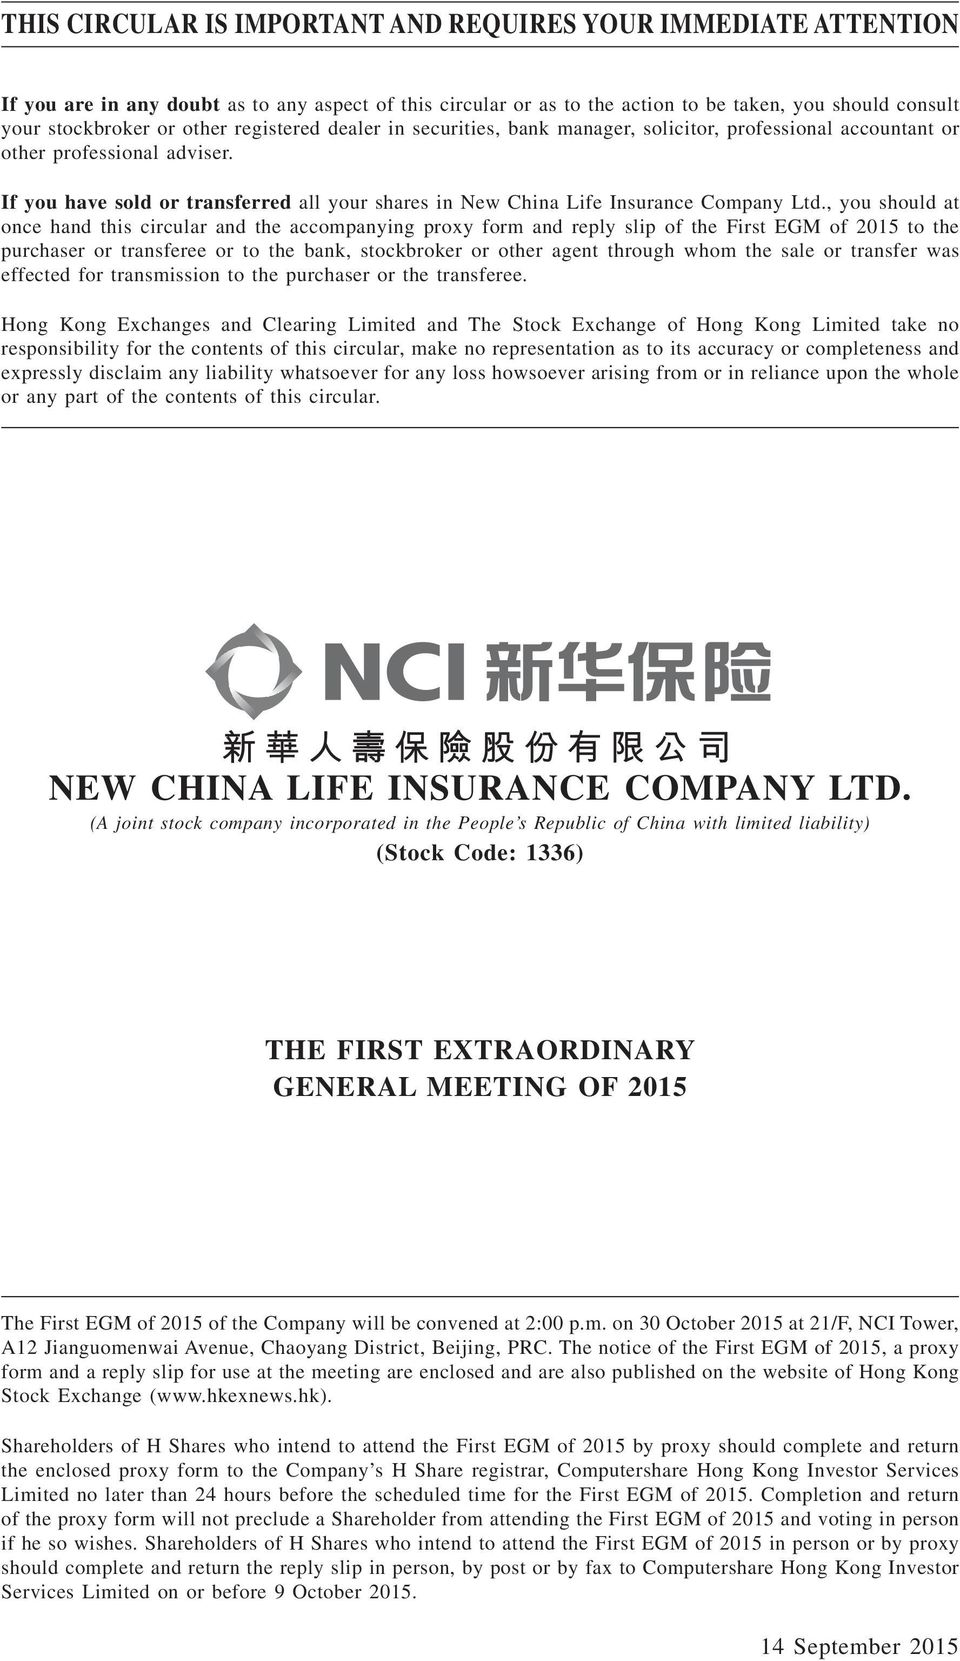 If you have sold or transferred all your shares in New China Life Insurance Company Ltd.